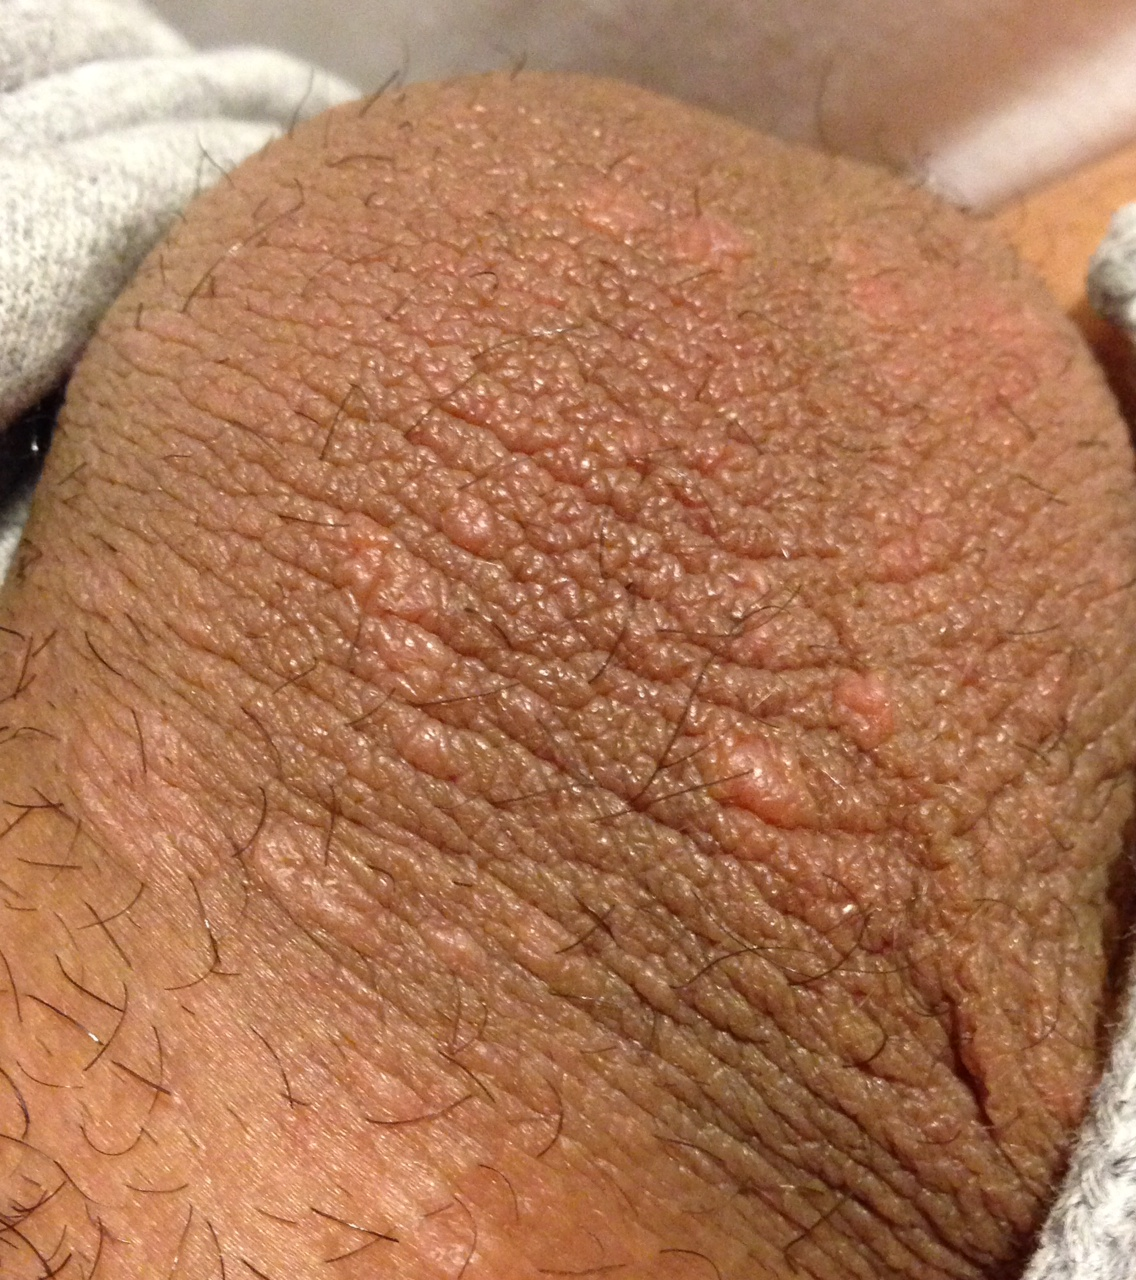 Eczema on Scrotum - Dermatology - MedHelp